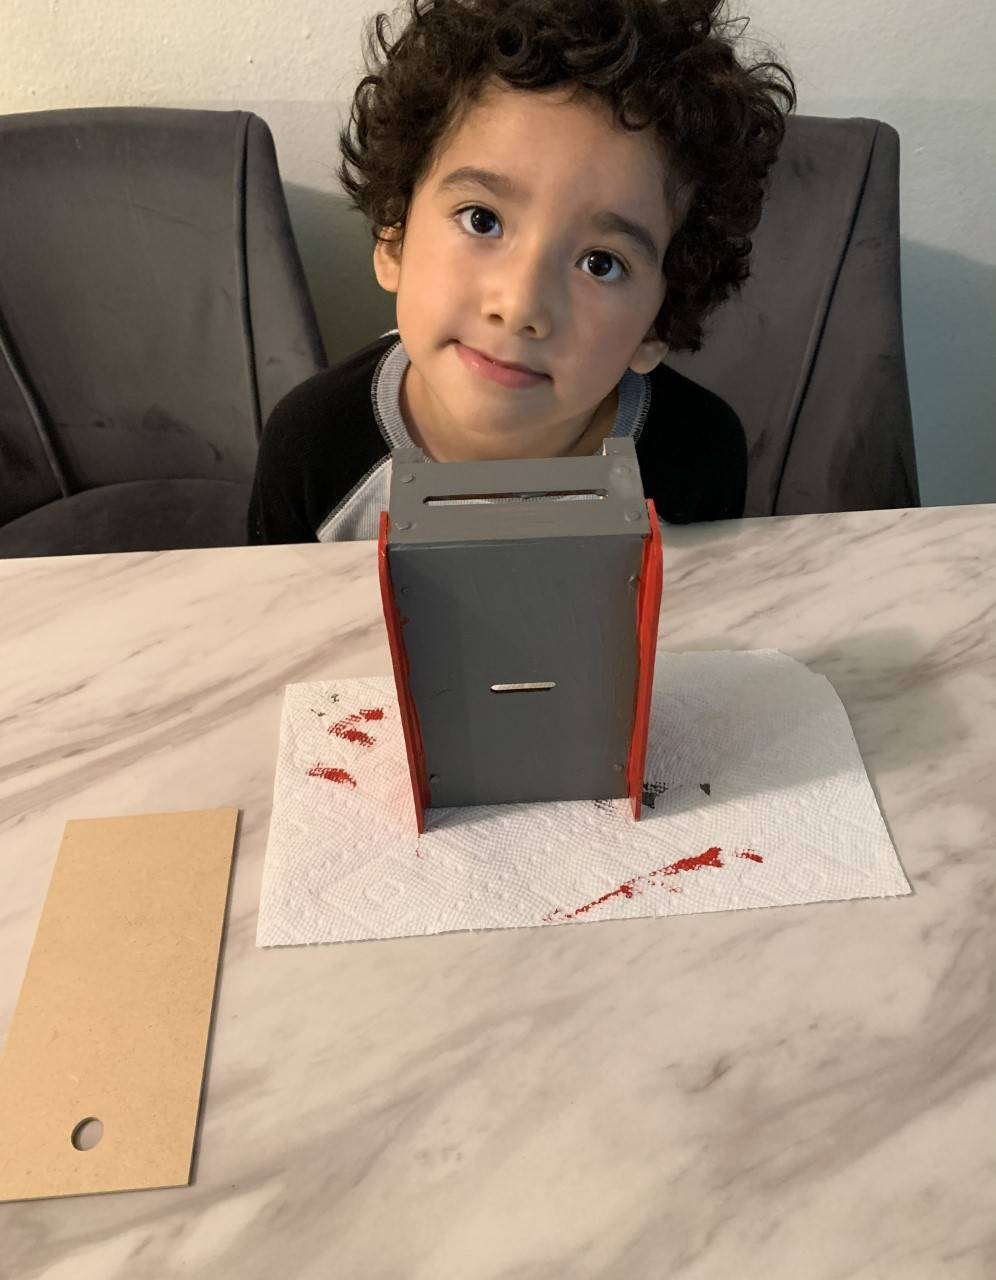 The little boy has finished painting his project and now it is grey and red.